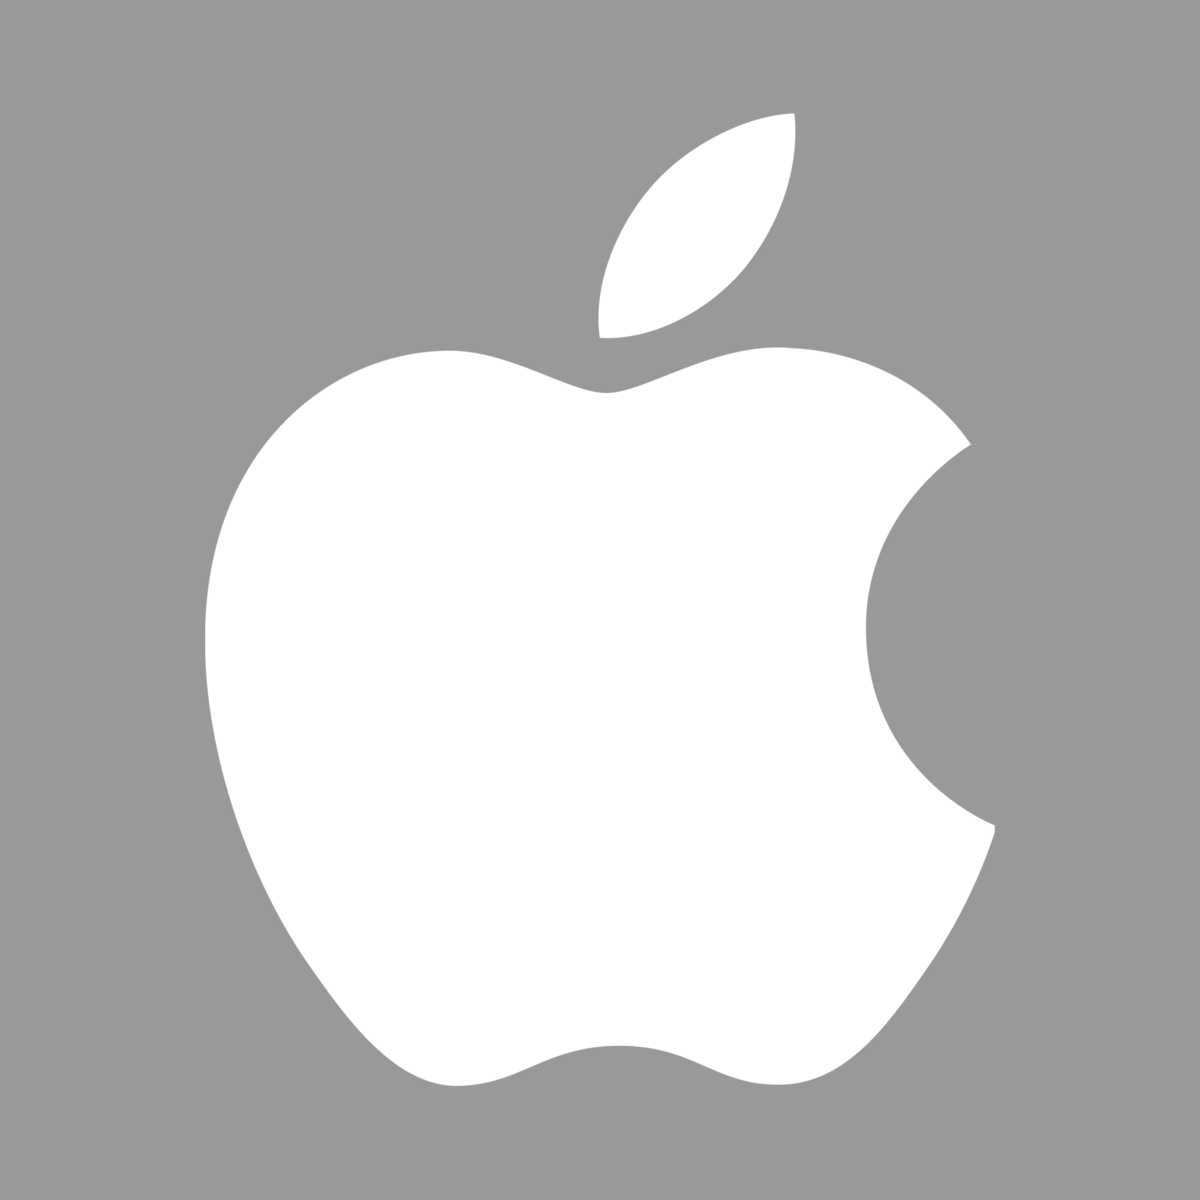 File Apple Gray Logo Png Wikimedia Commons All apple logo png images are displayed below available in 100% png transparent white browse and download free glossy apple logo png clipart transparent background image available in. file apple gray logo png wikimedia